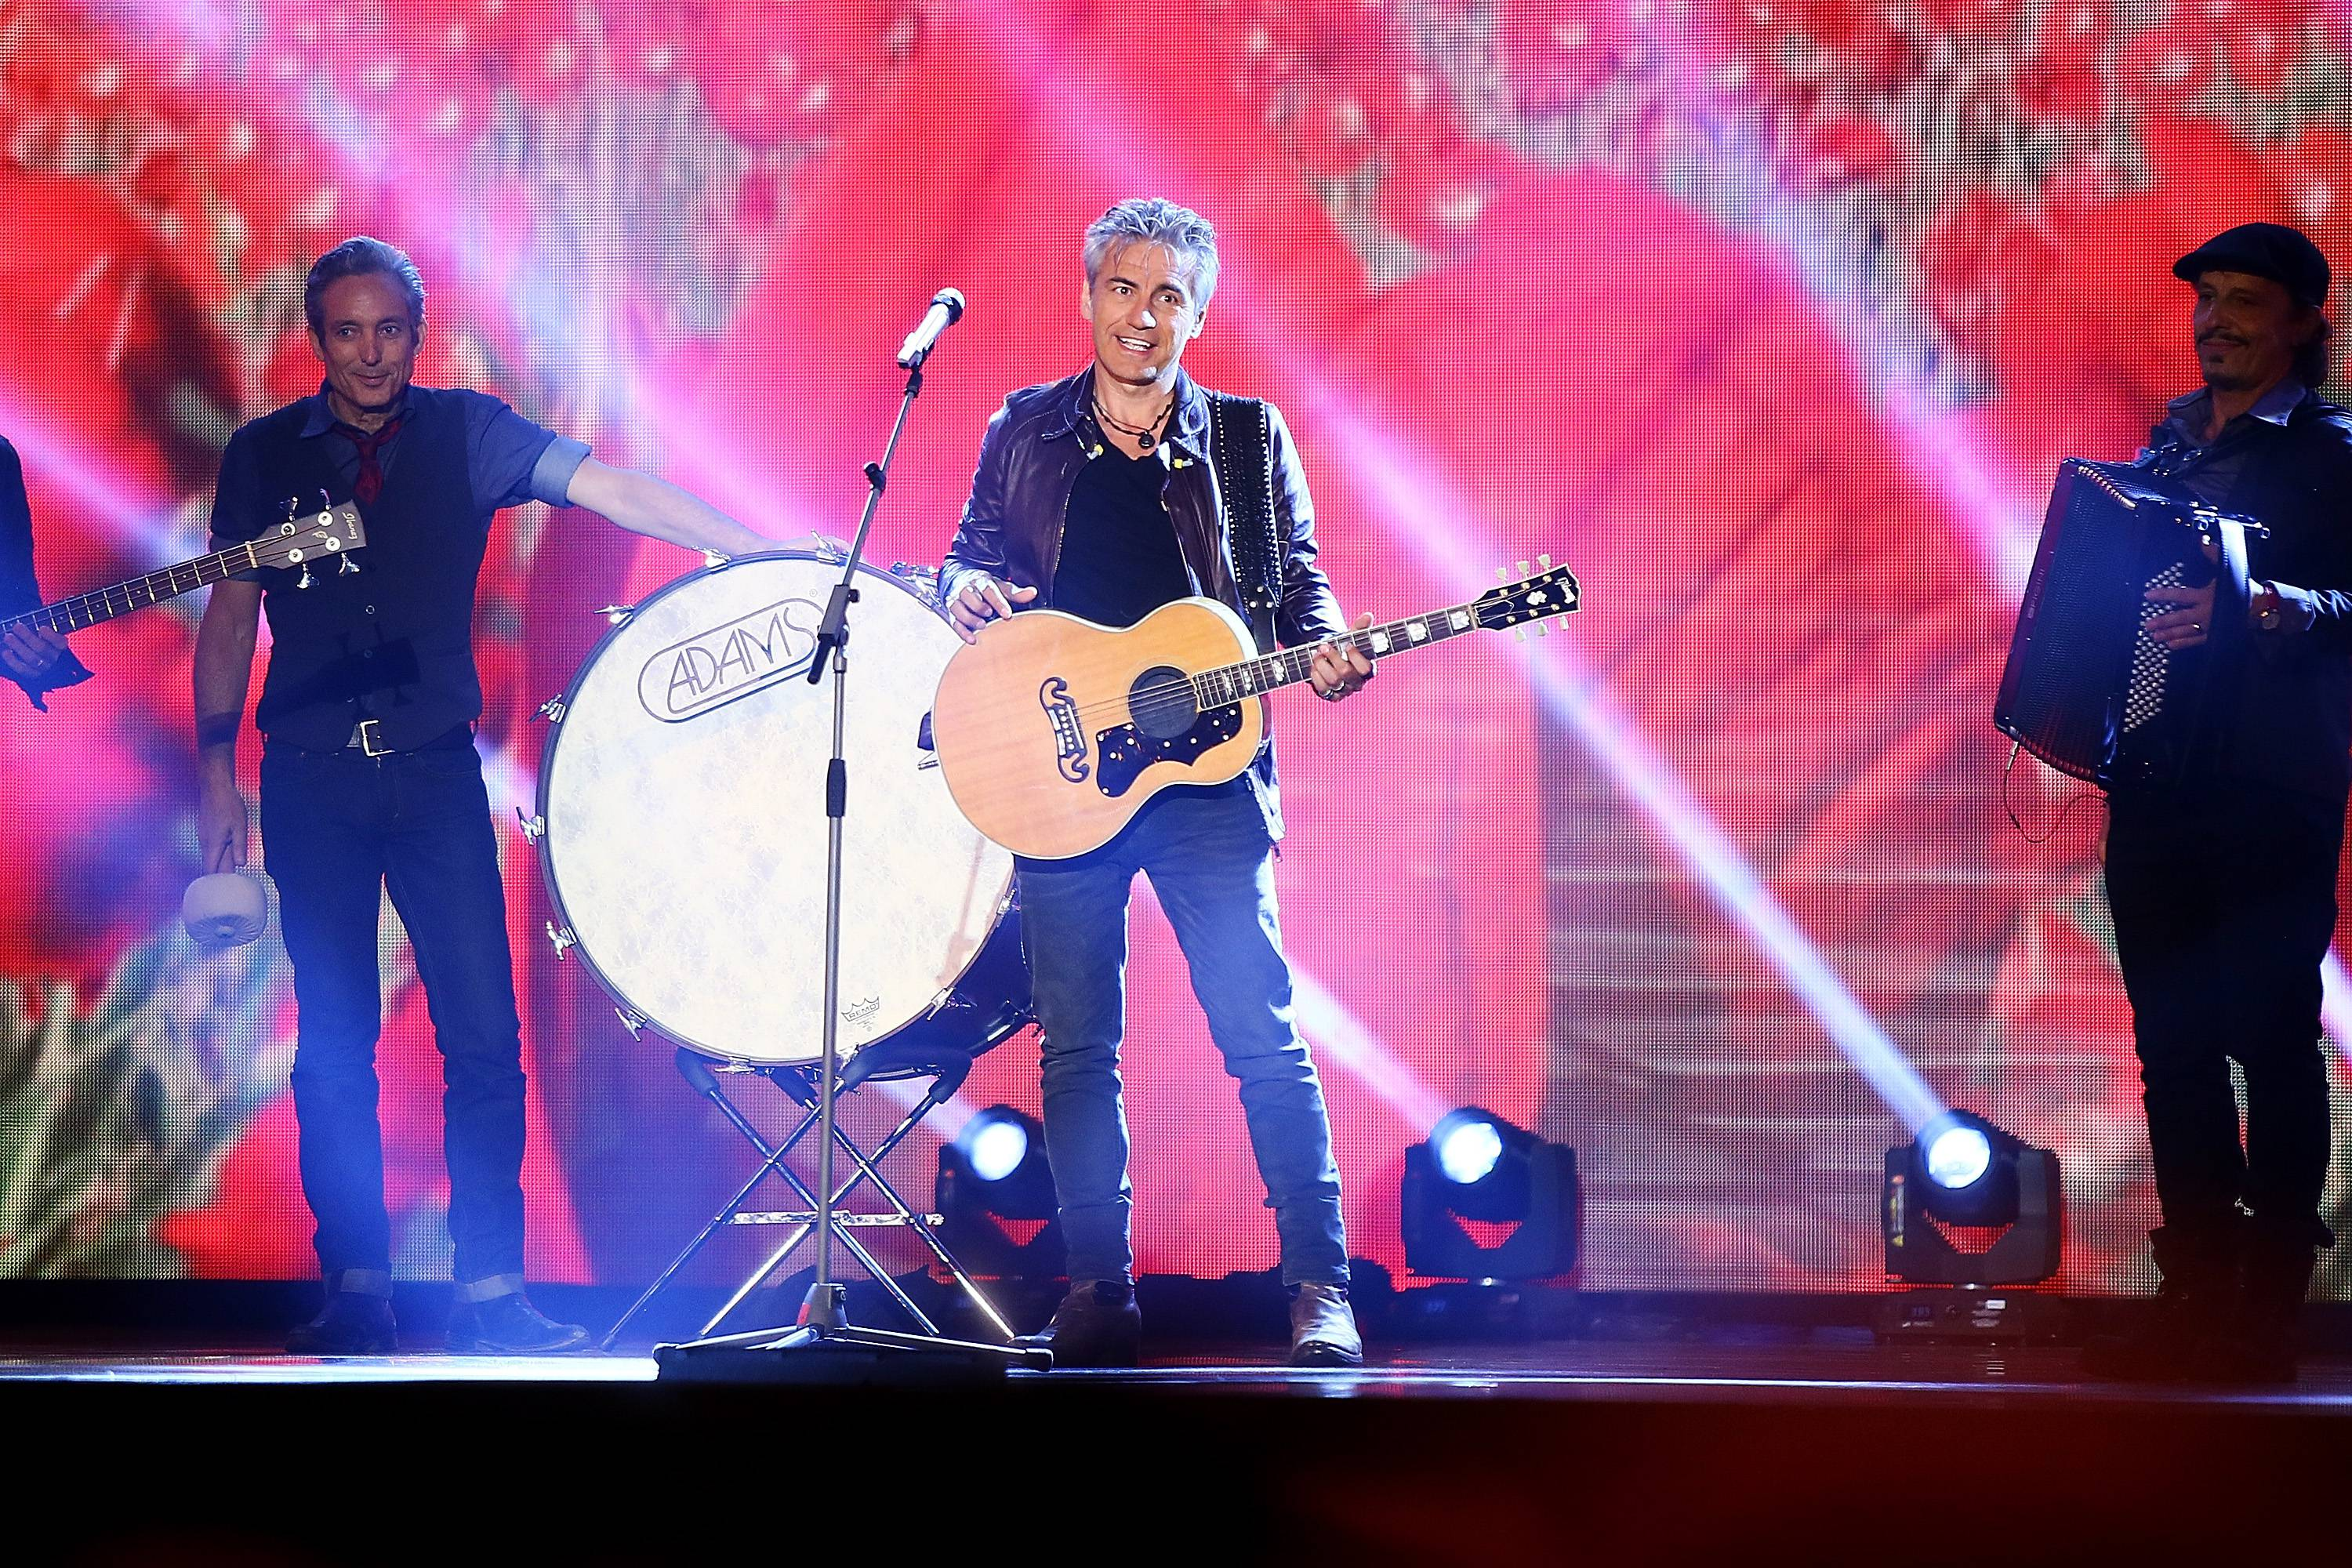 ROME, ITALY - APRIL 25:  Luciano Ligabue performs during the 'Viva il 25 aprile!' at Piazza del Quirinale on April 25, 2015 in Rome, Italy.  (Photo by Ernesto Ruscio/Getty Images)